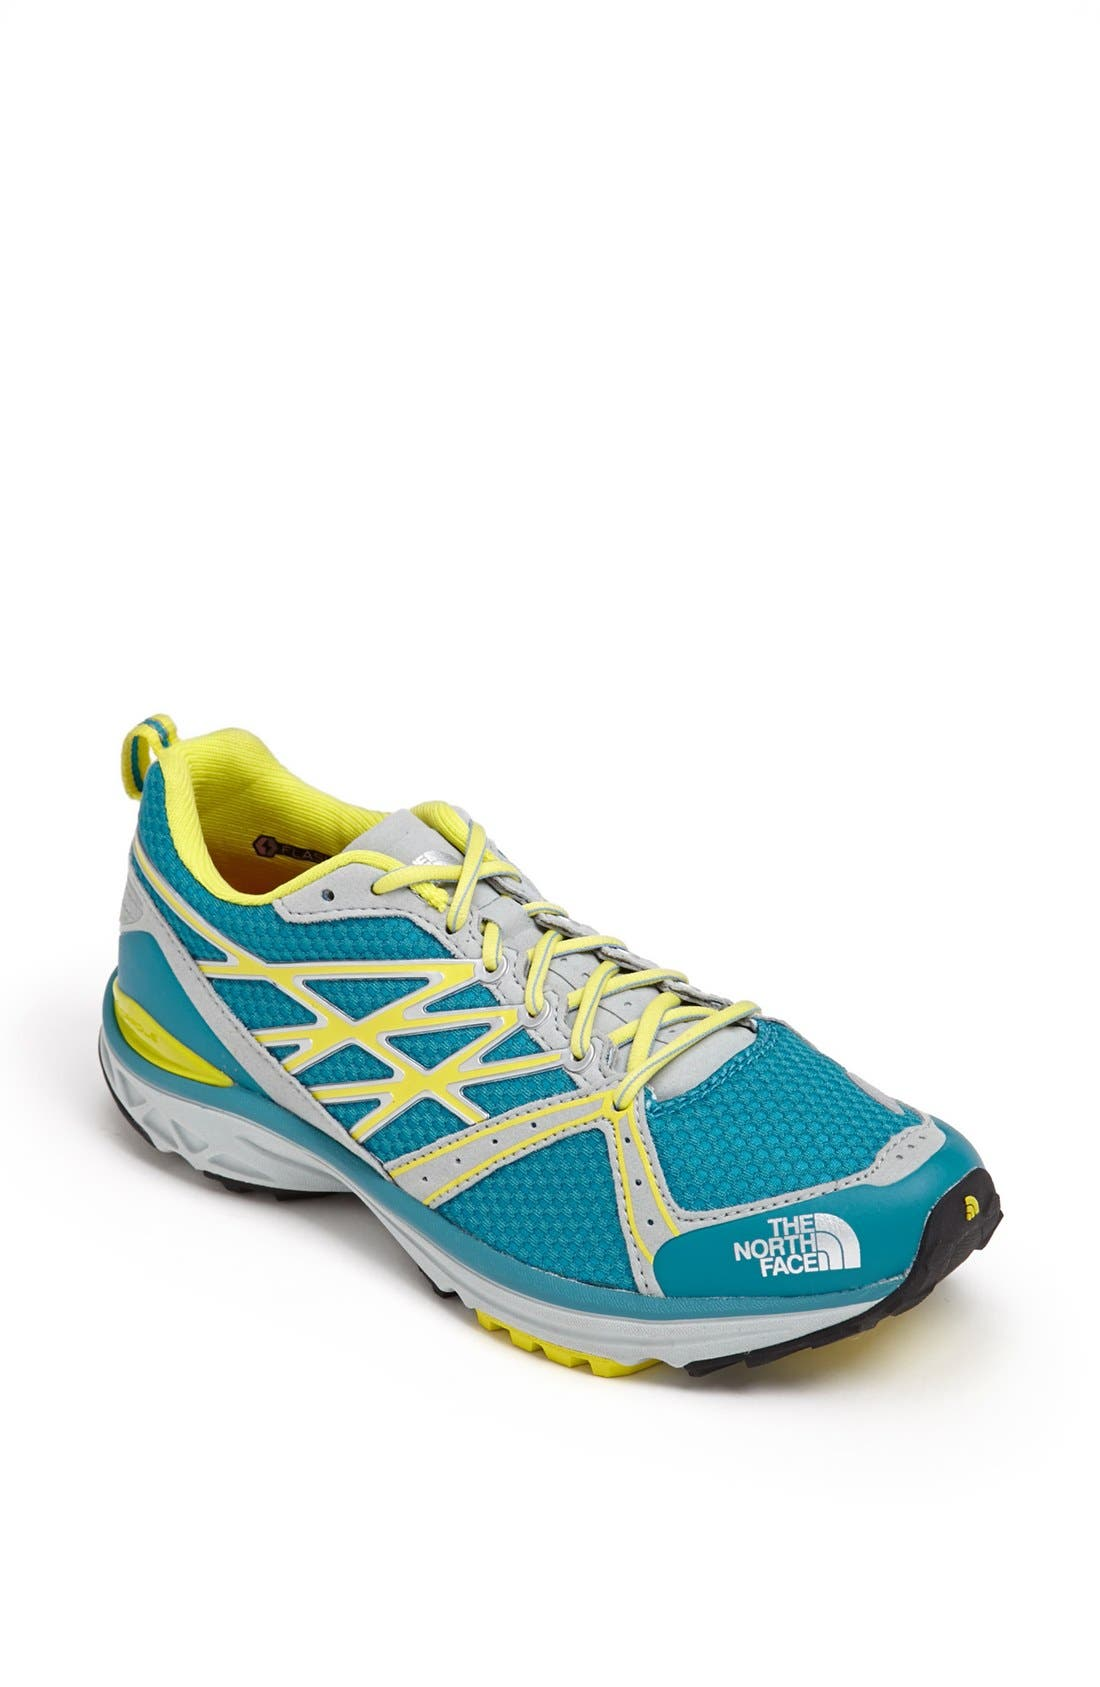 Alternate Image 1 Selected - The North Face 'Single Track 'Hayasa 11' Trail Running Shoe (Women)